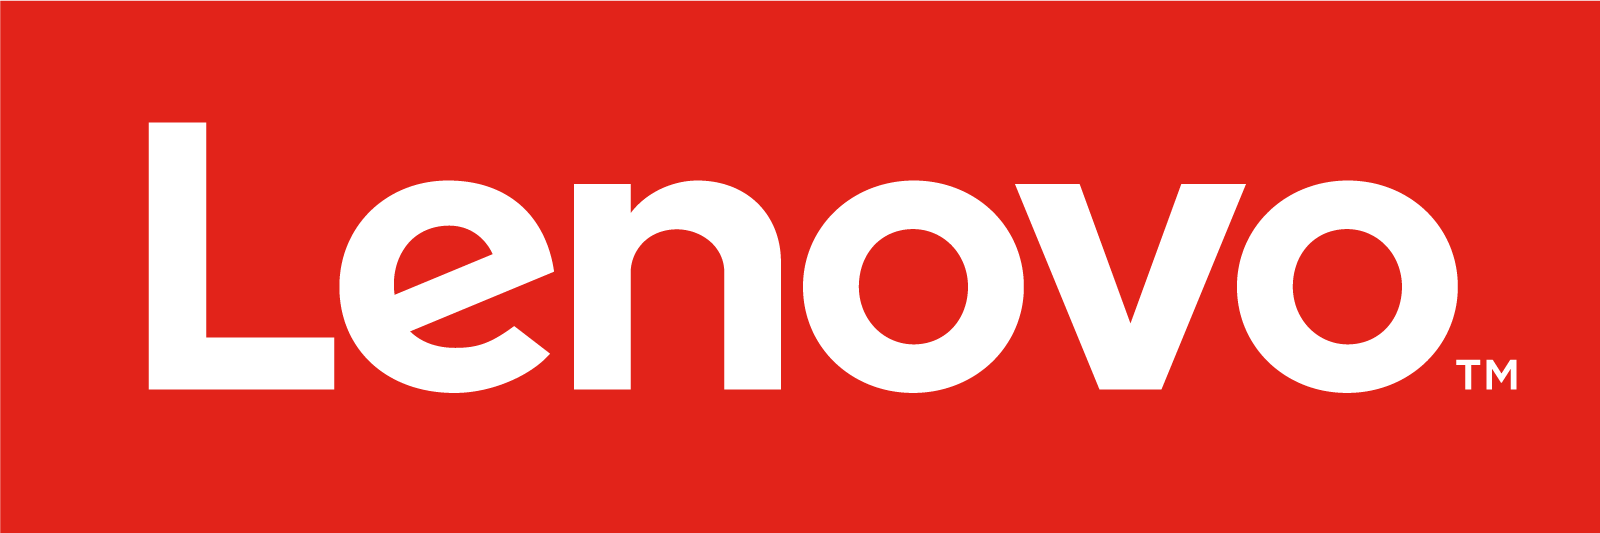 Troubleshooting Guide To Fix Lenovo Laptop Screen Flickering